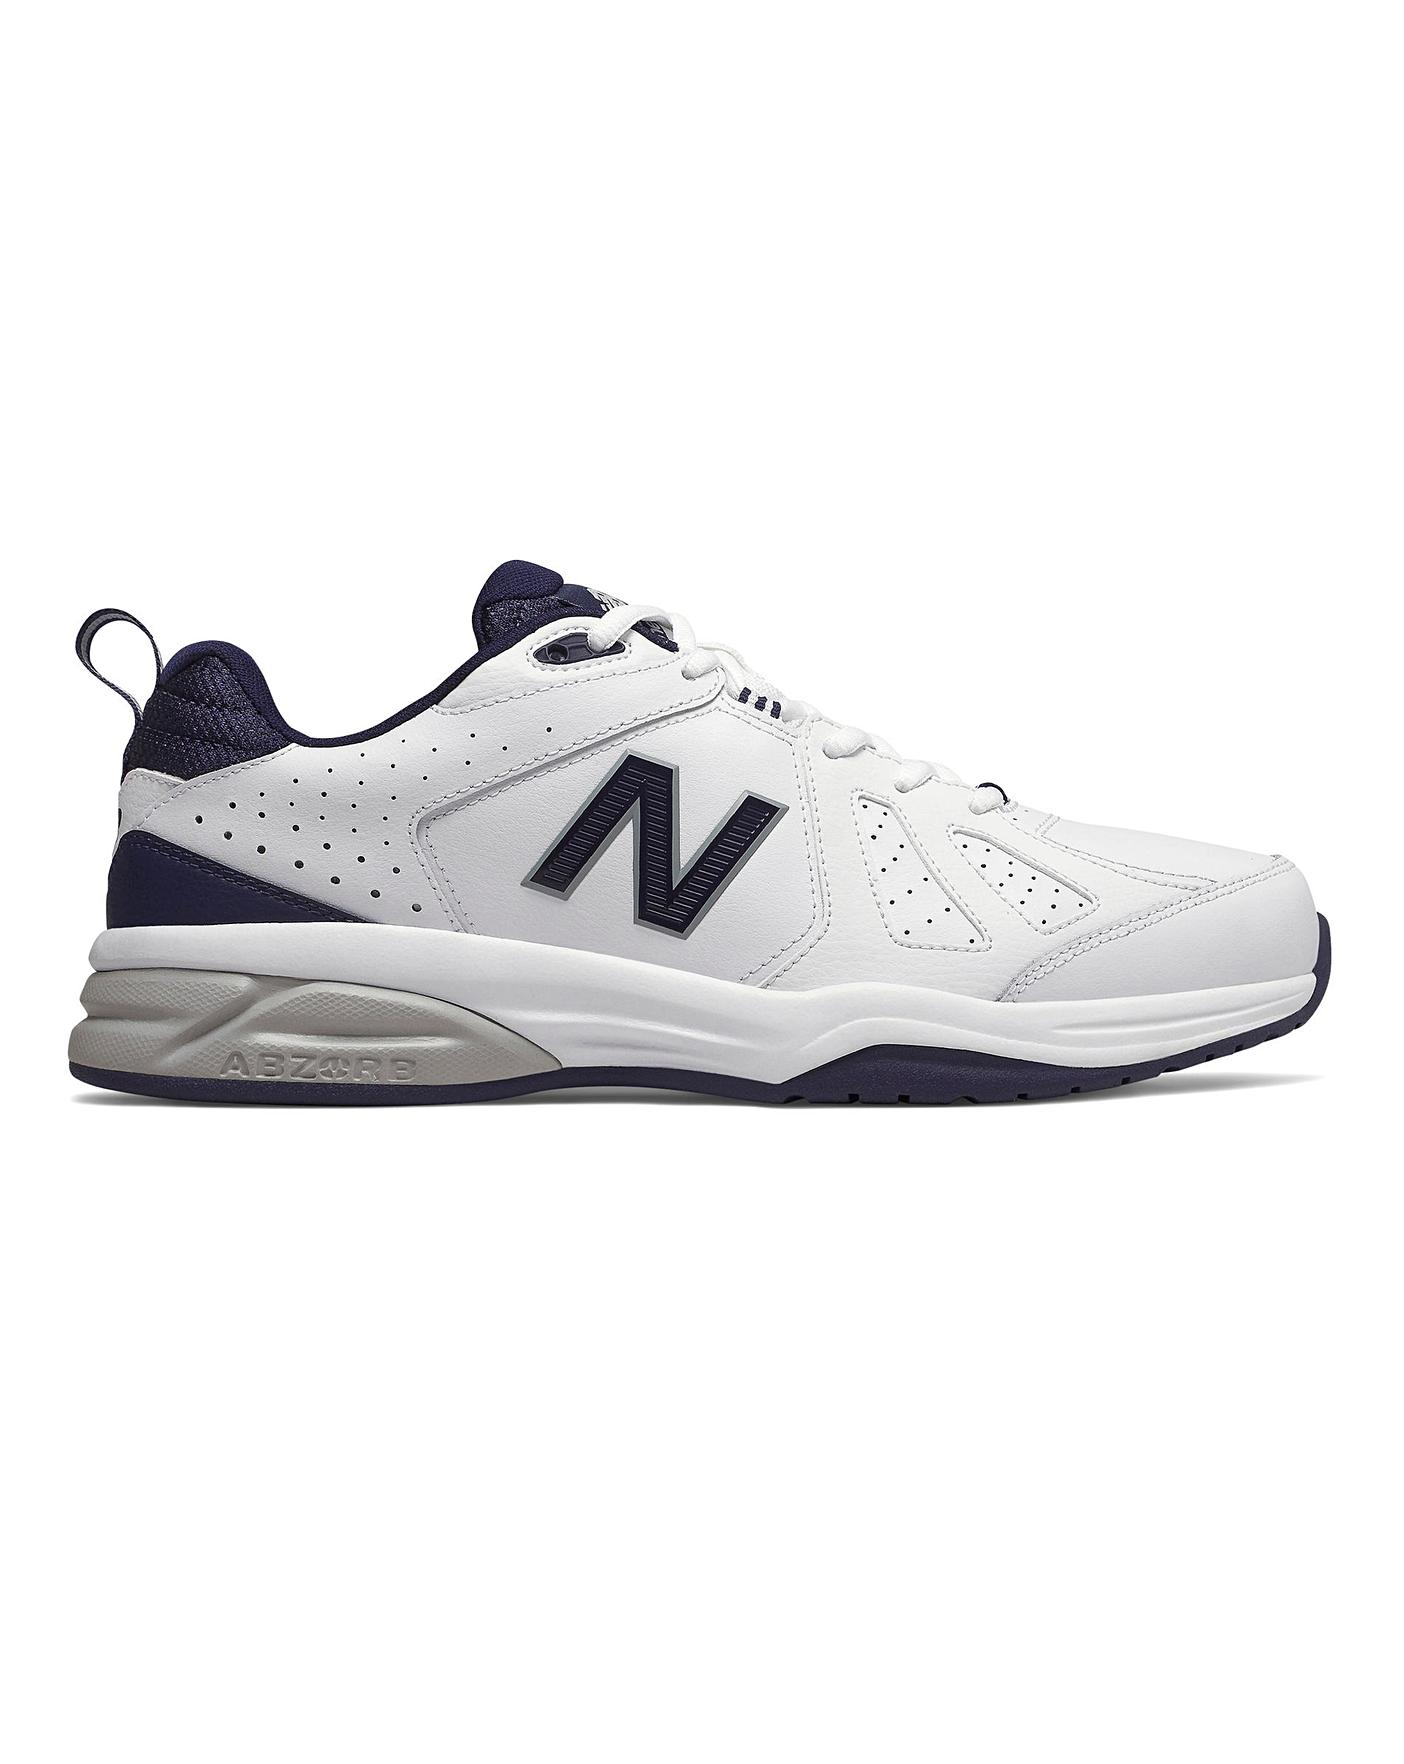 New Balance MX624 Lace Trainers Wide